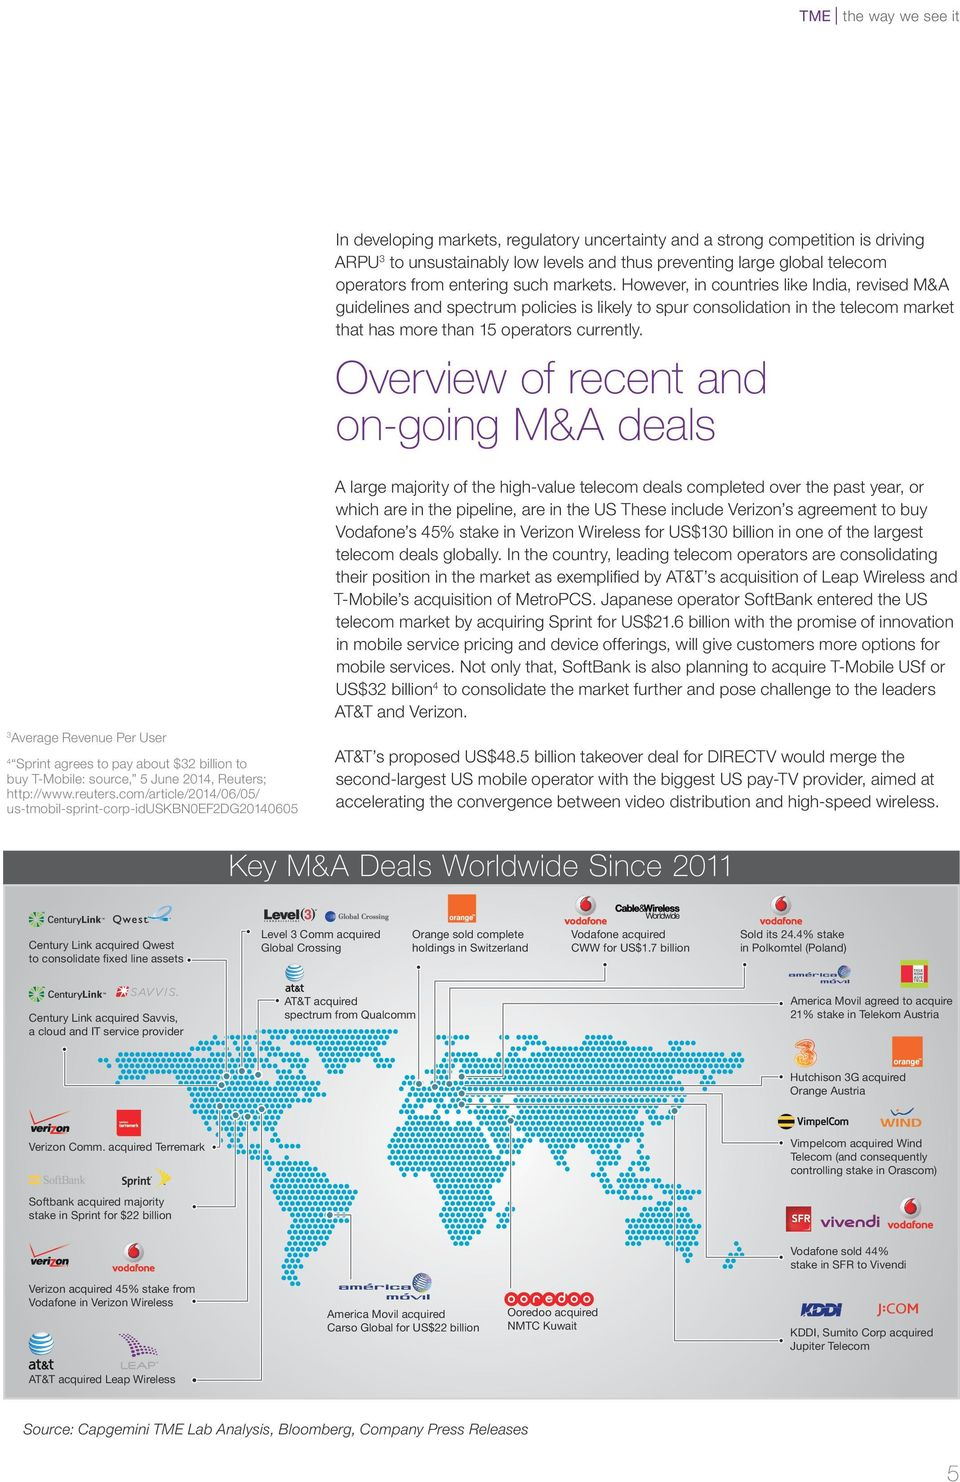 Overview of recent and on-going M&A deals A large majority of the high-value telecom deals completed over the past year, or which are in the pipeline, are in the US These include Verizon s agreement